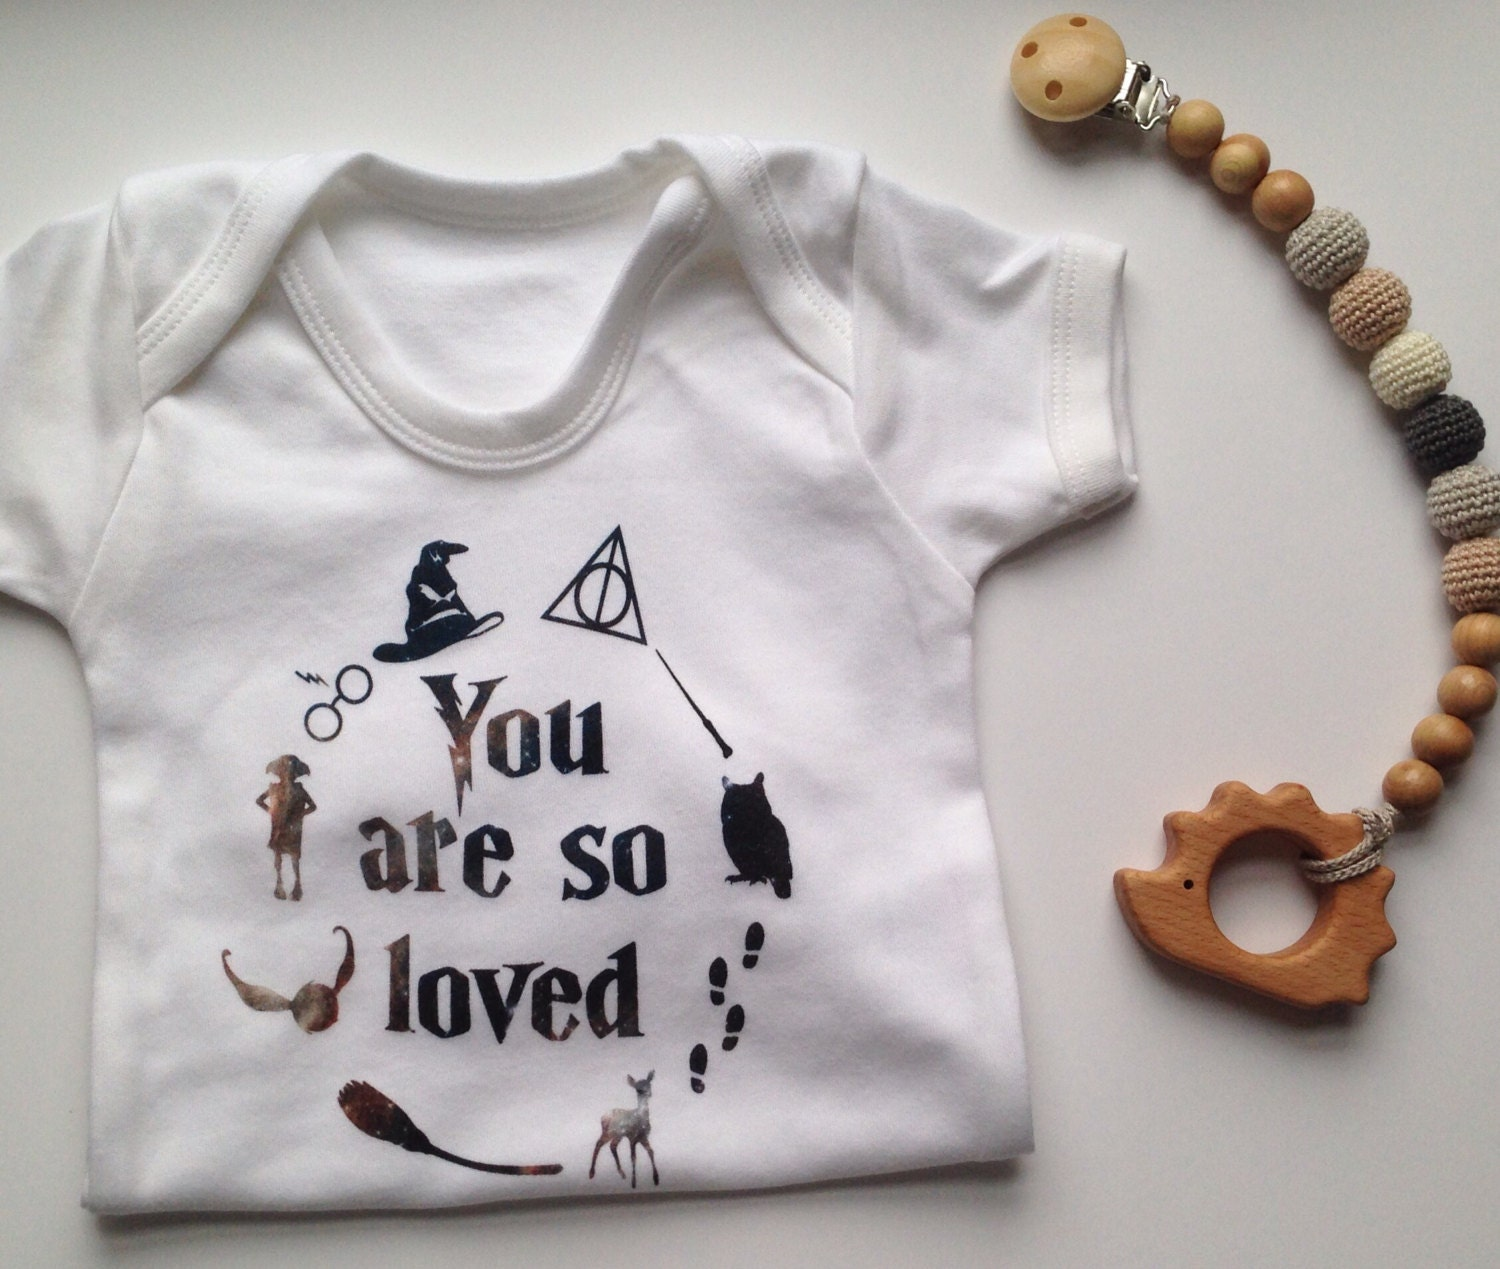 Geek Baby Clothes You are So Loved baby Boy vest Long and short sleeved  One Piece Baby Clothes Gender Neutral Baby Clothes